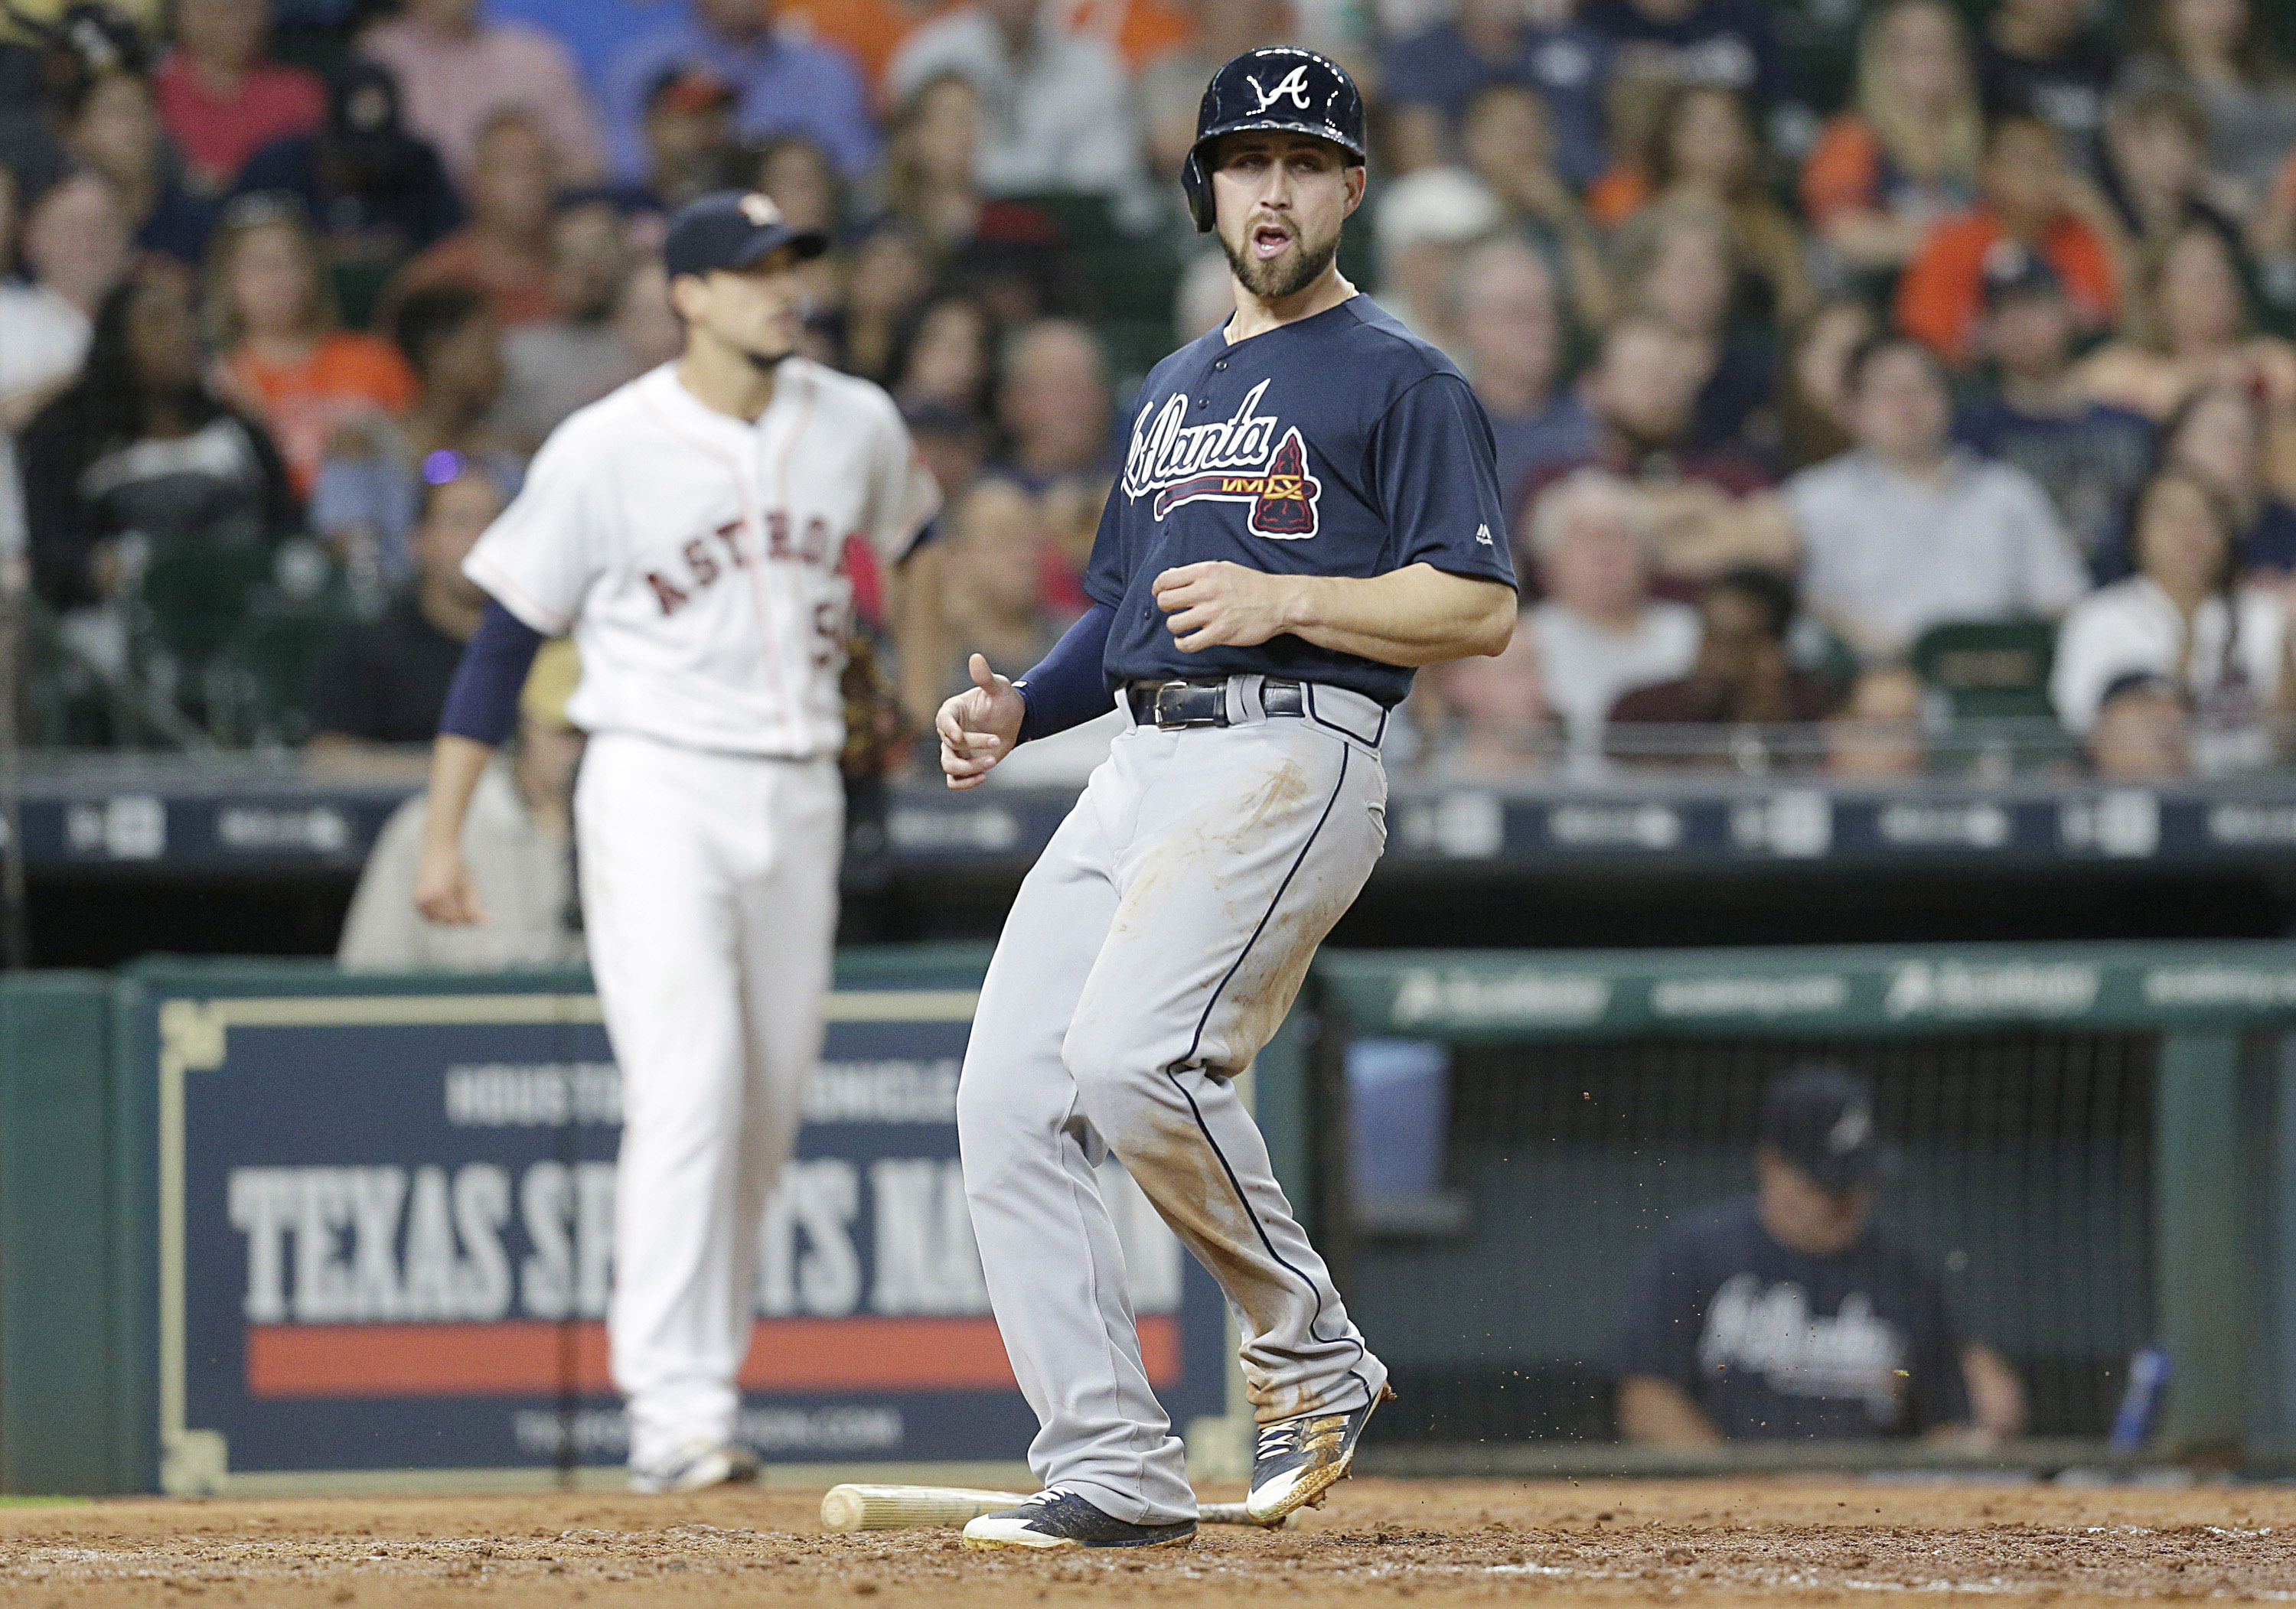 MLB: Atlanta Braves at Houston Astros